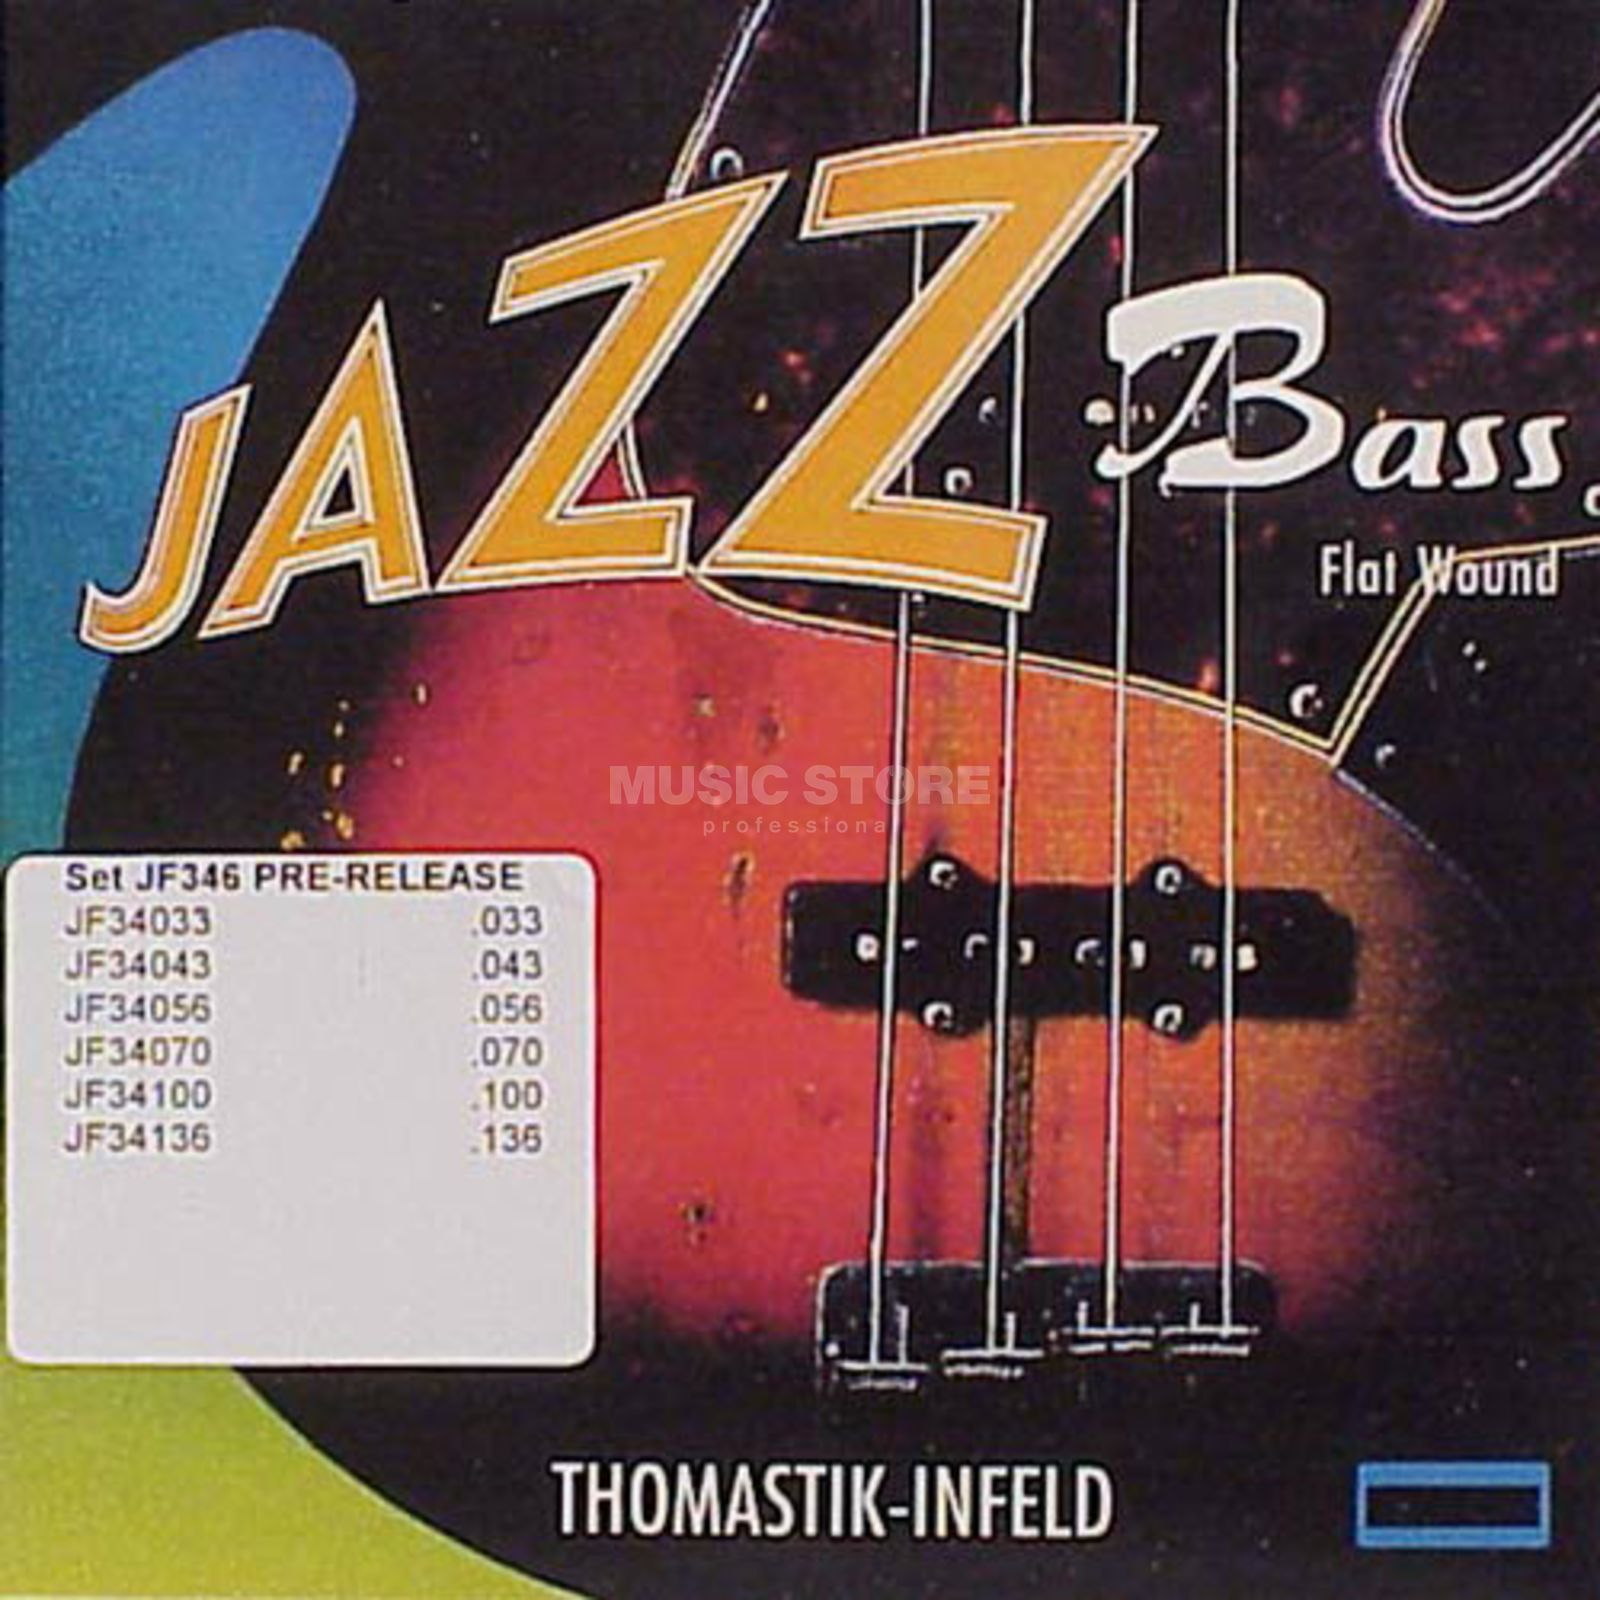 Thomastik 6 Bass Srtings JF 346 33-136 Nickel Flat Wound Product Image